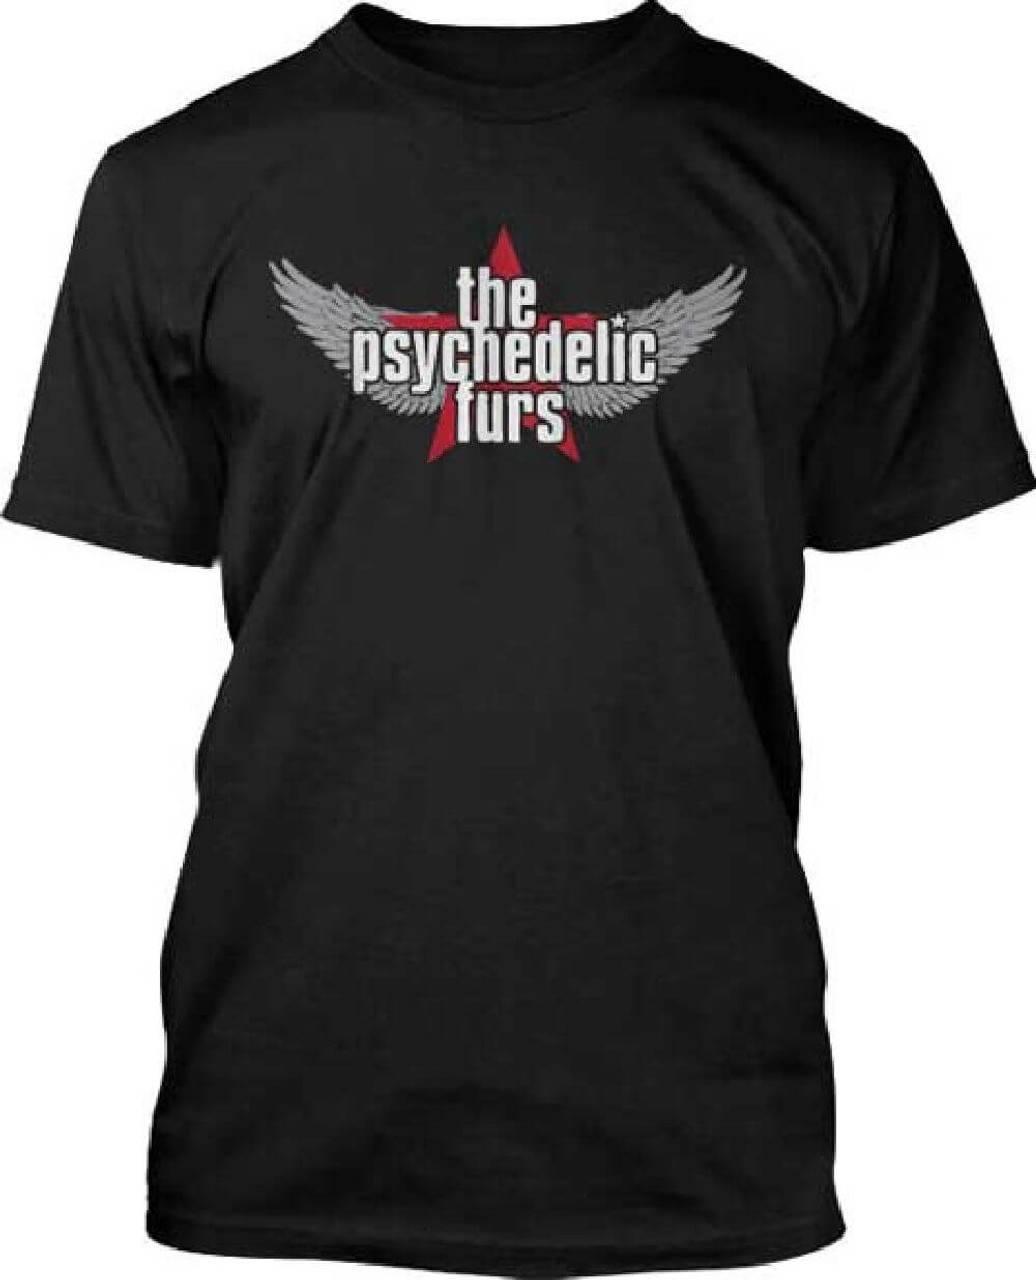 cf9a252a9689c5 The Psychedelic Furs Logo Men's Black T-shirt | Rocker Rags